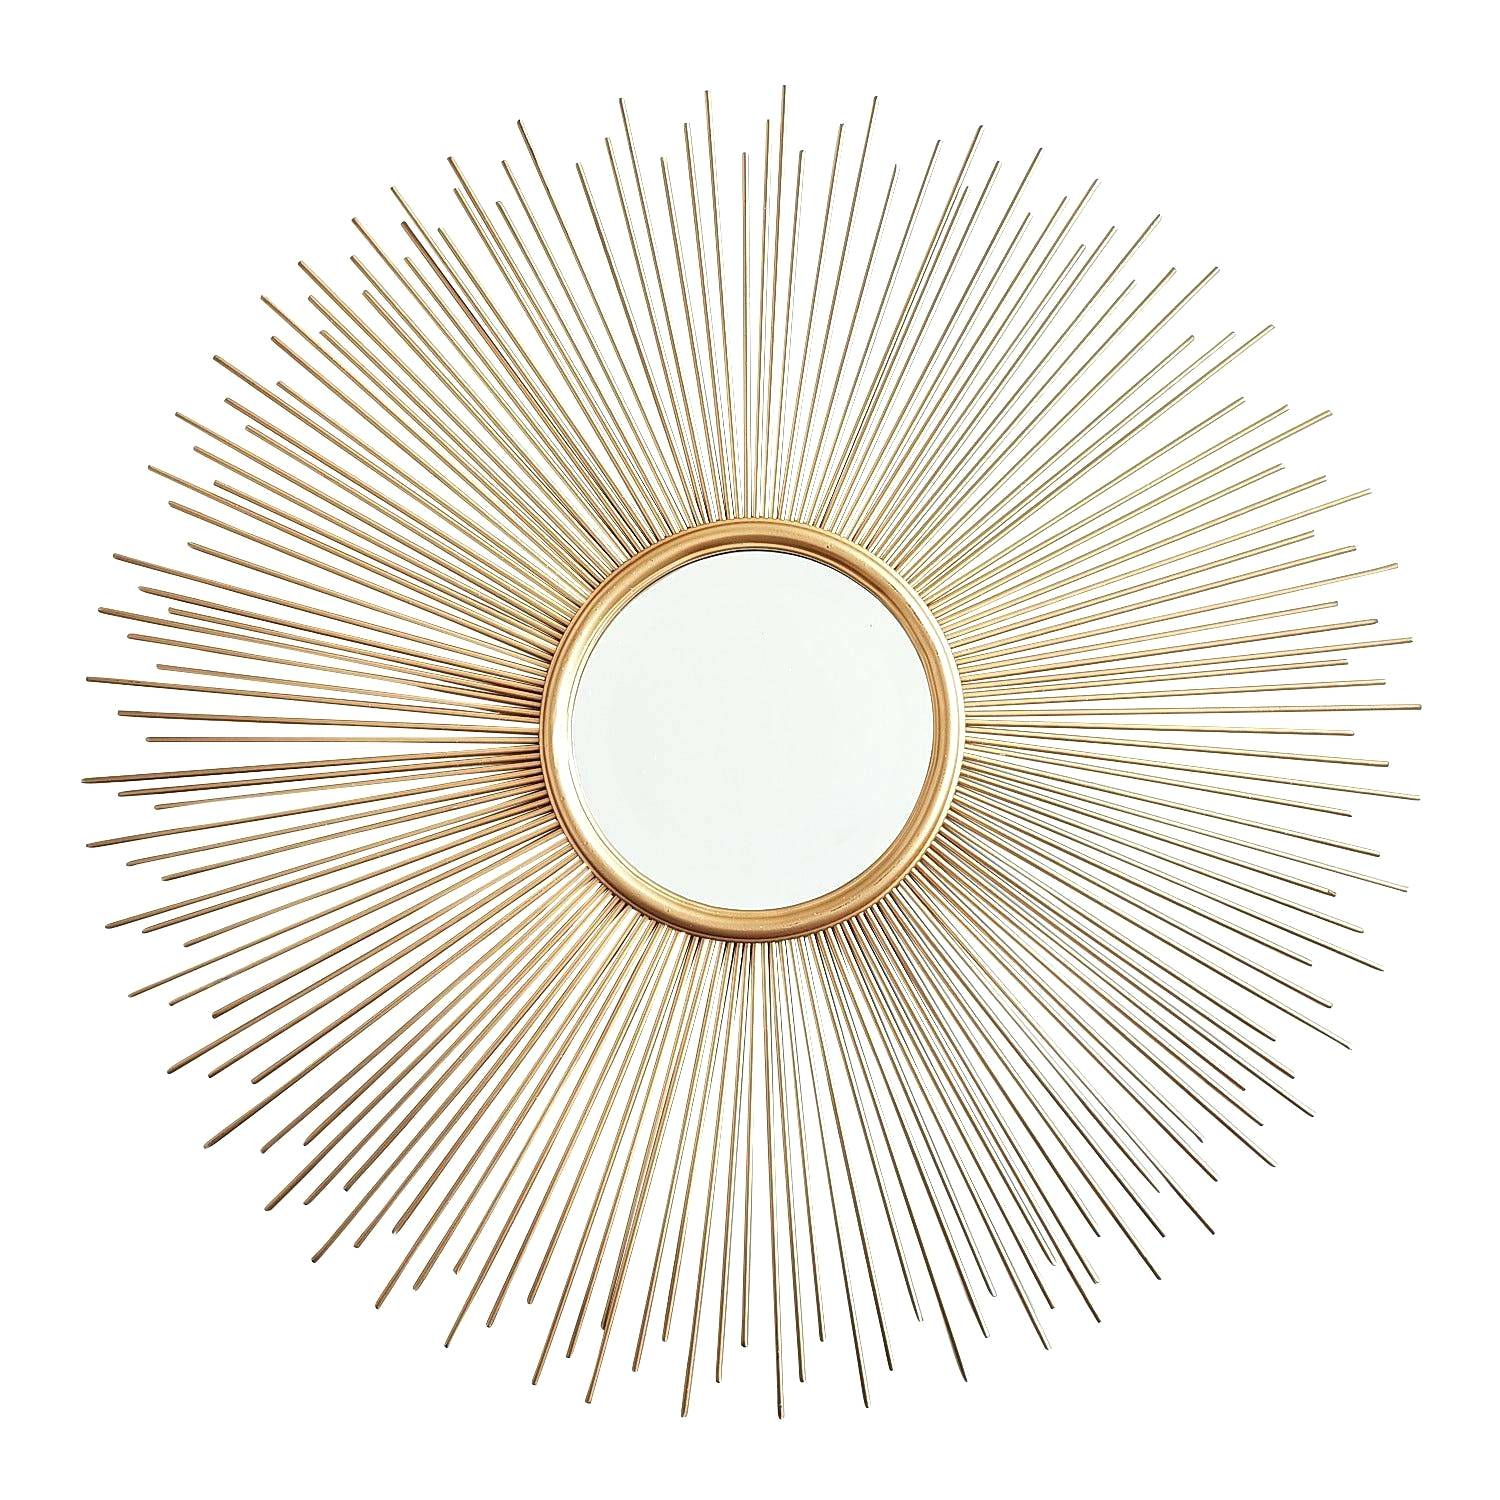 Metal Sunburst Mirror Save This Item To Sunburst Metal Regarding Estrela Modern Sunburst Metal Wall Mirrors (View 6 of 20)